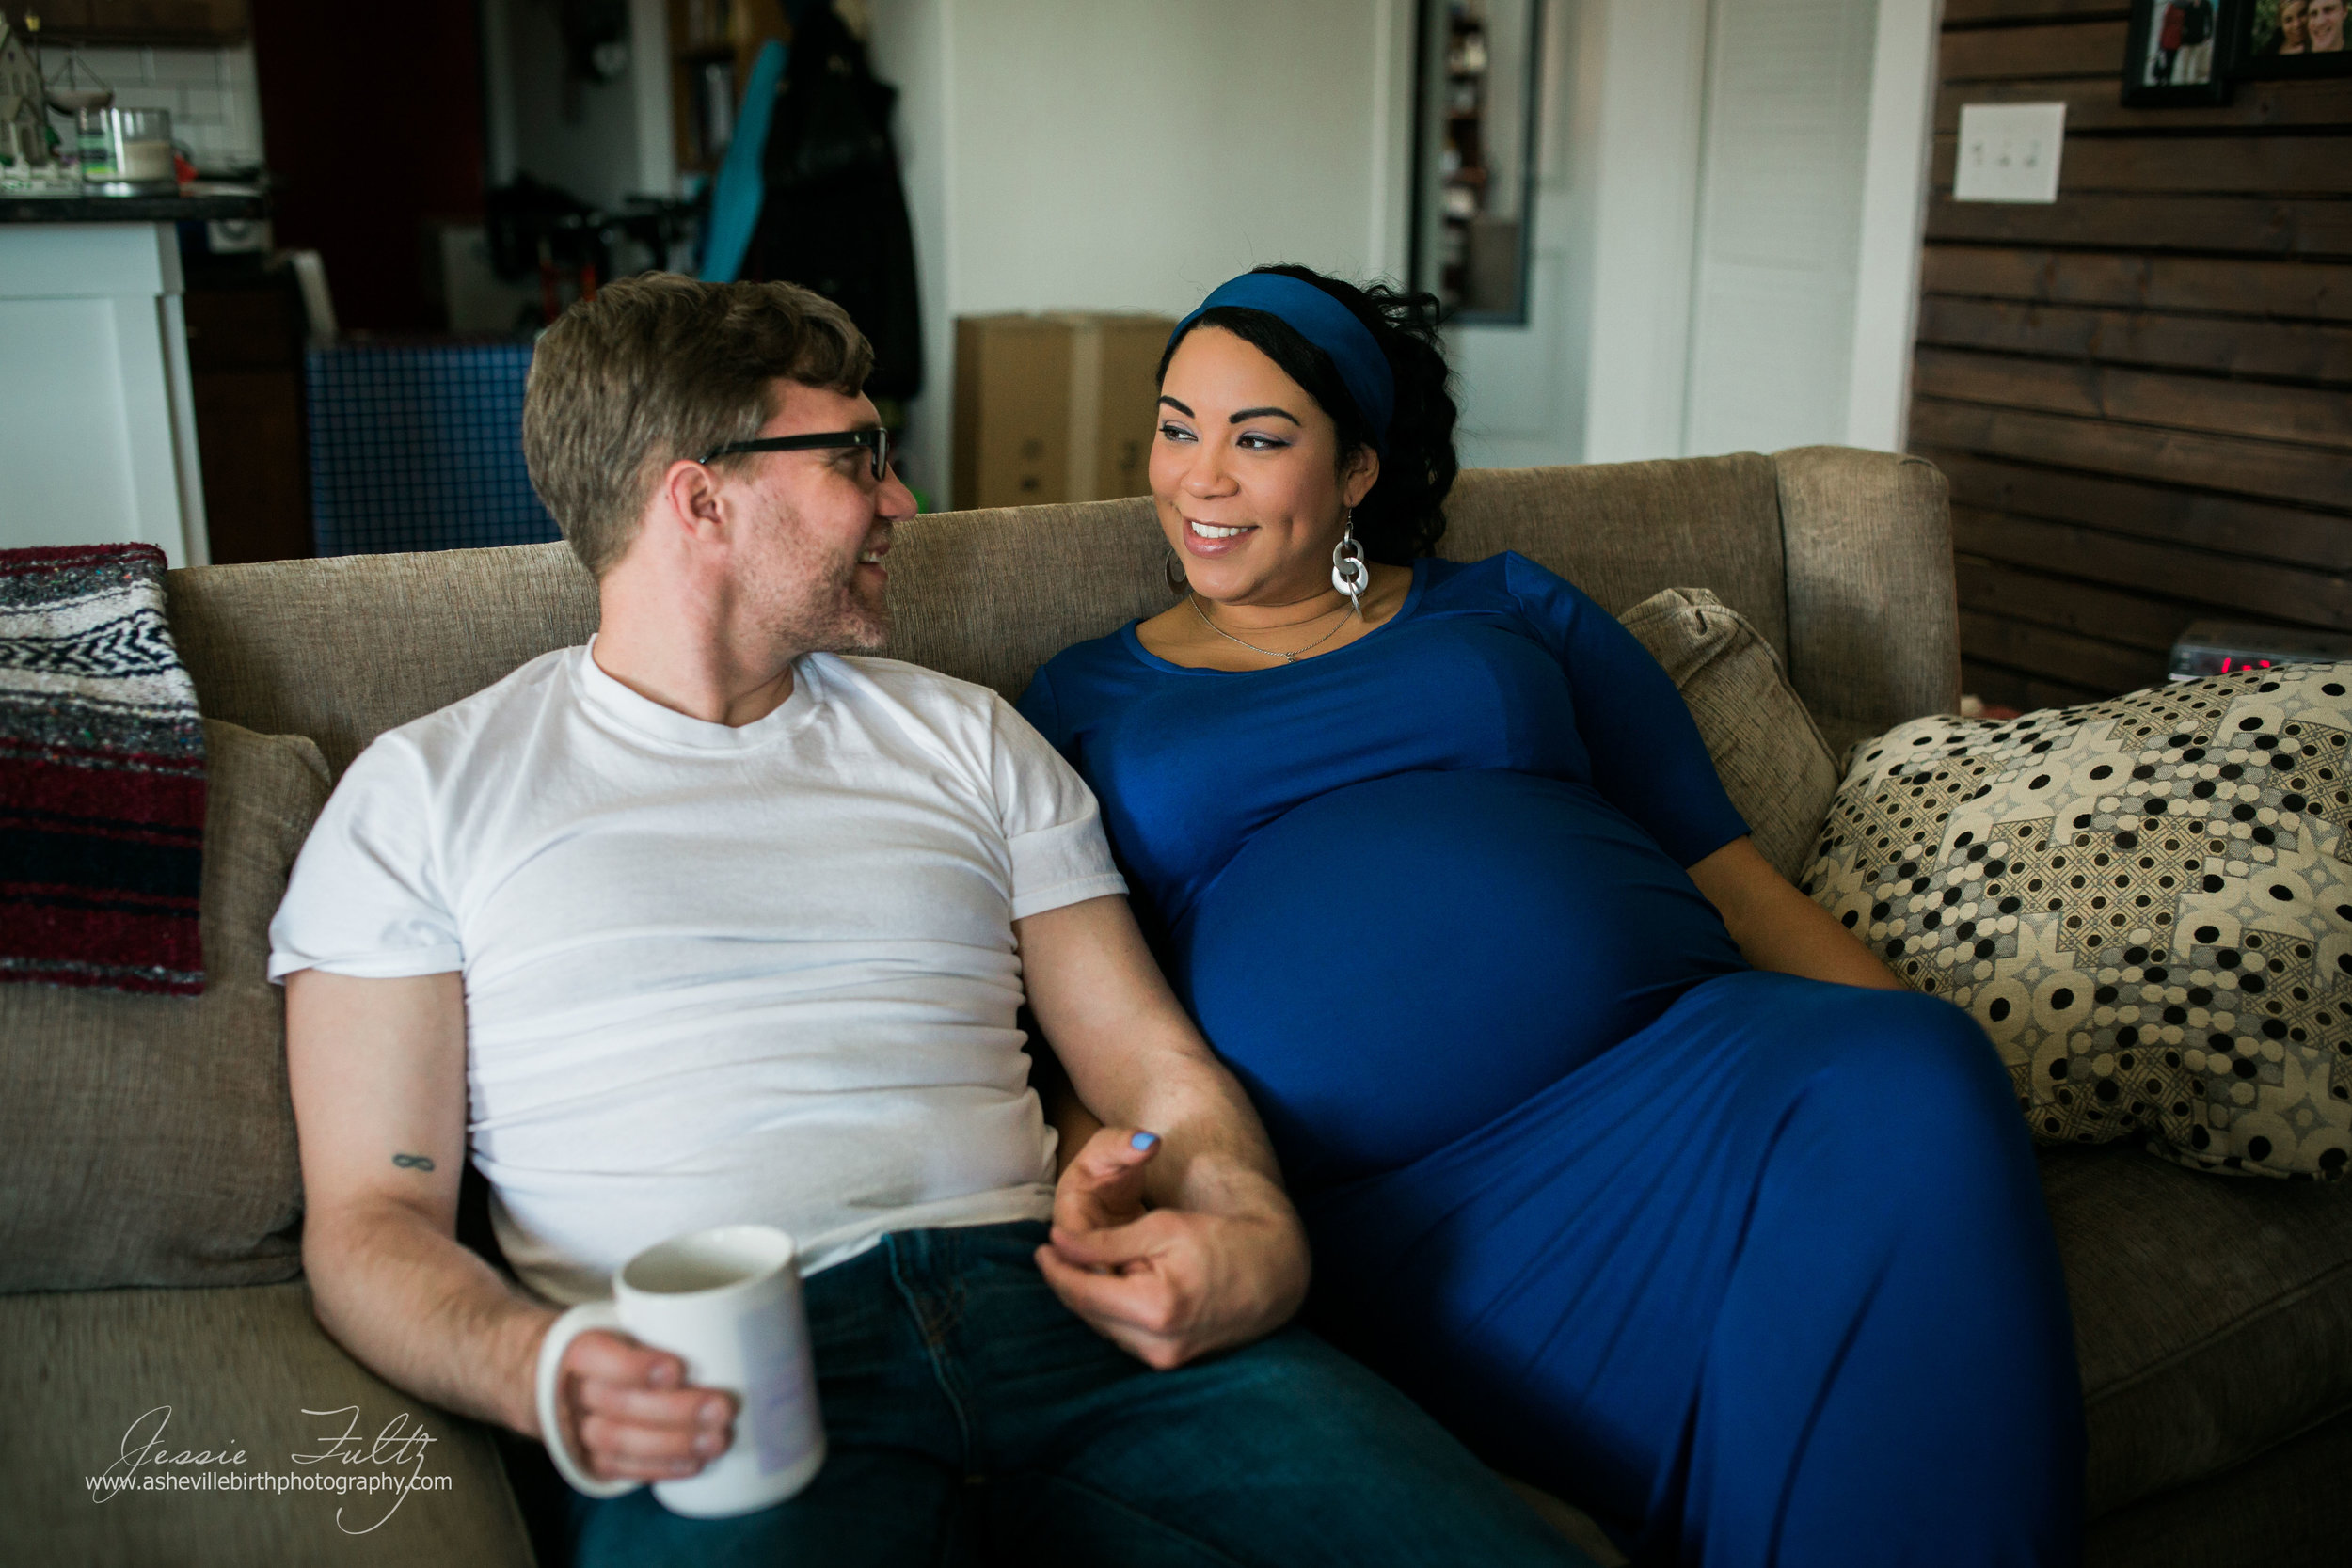 pregnant woman in blue dress and husband sitting on couch holding hands and smiling at each other